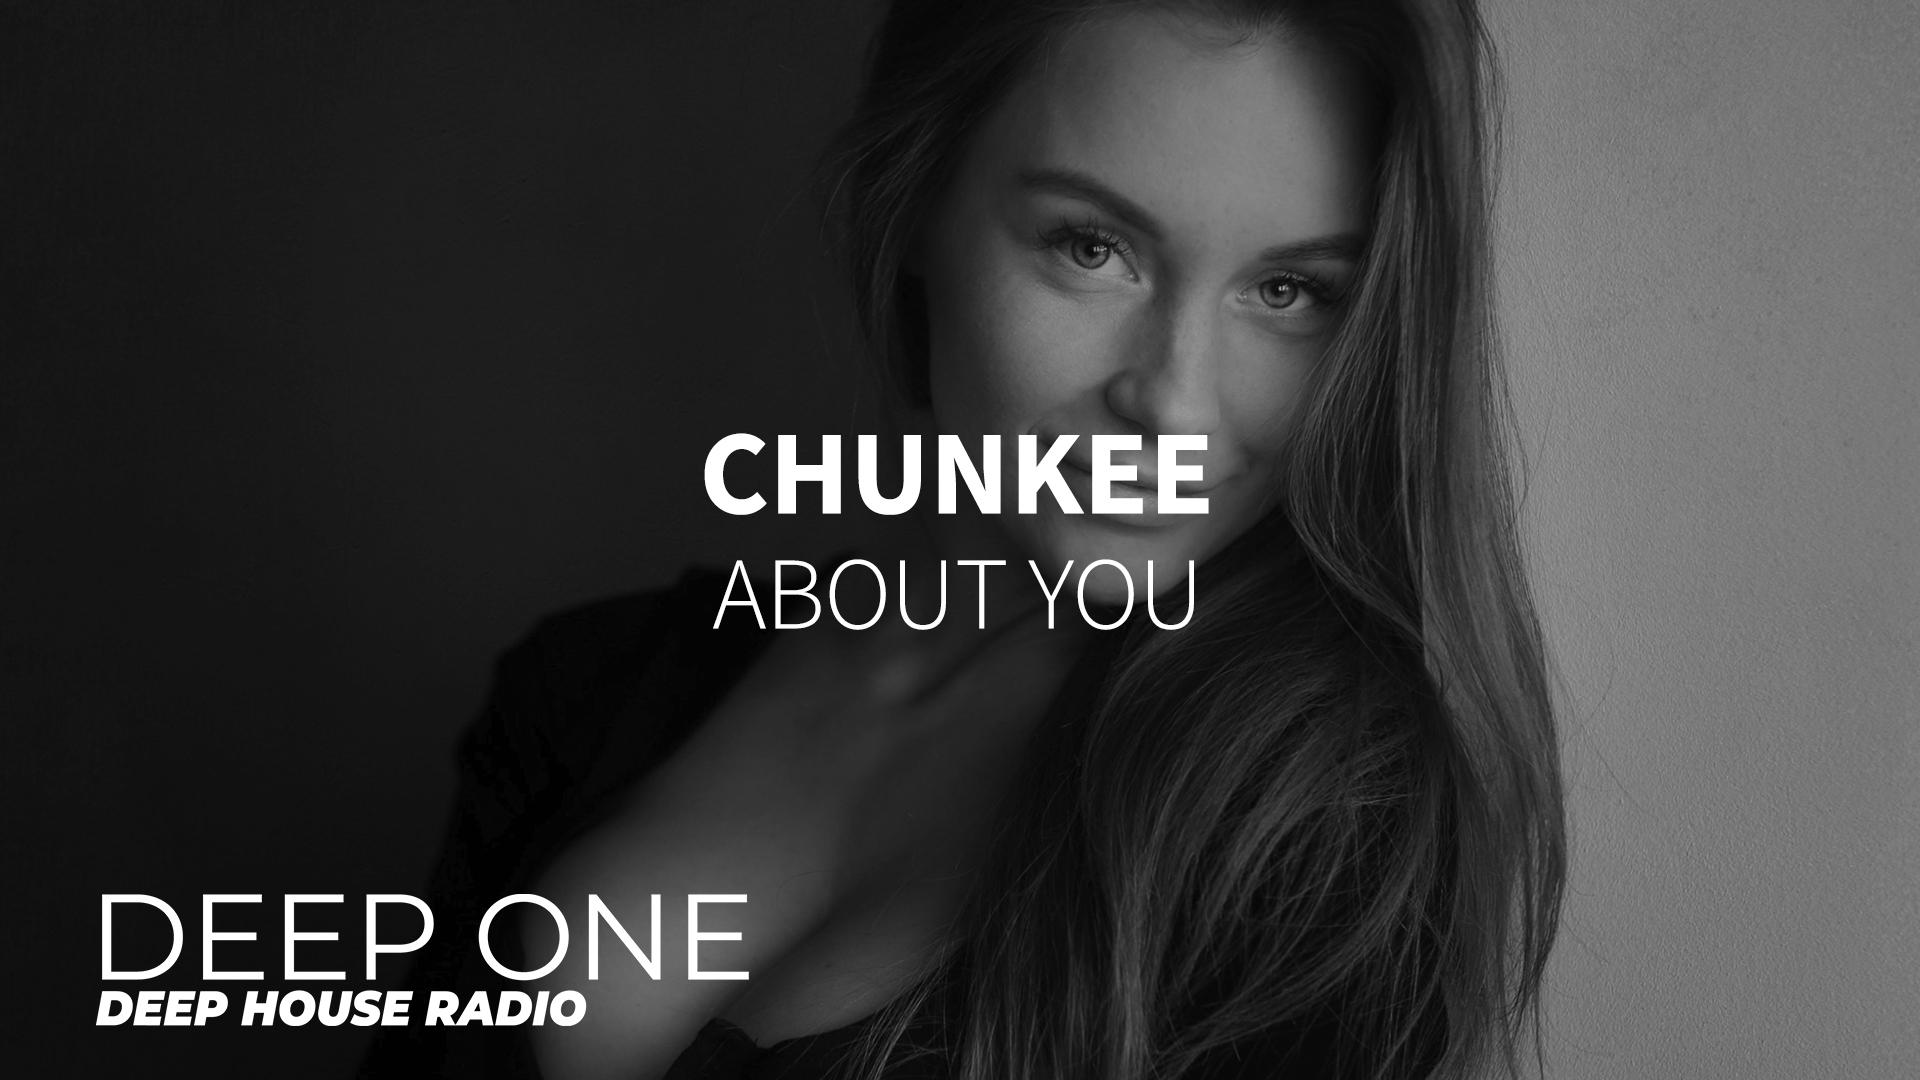 Chunkee - About You